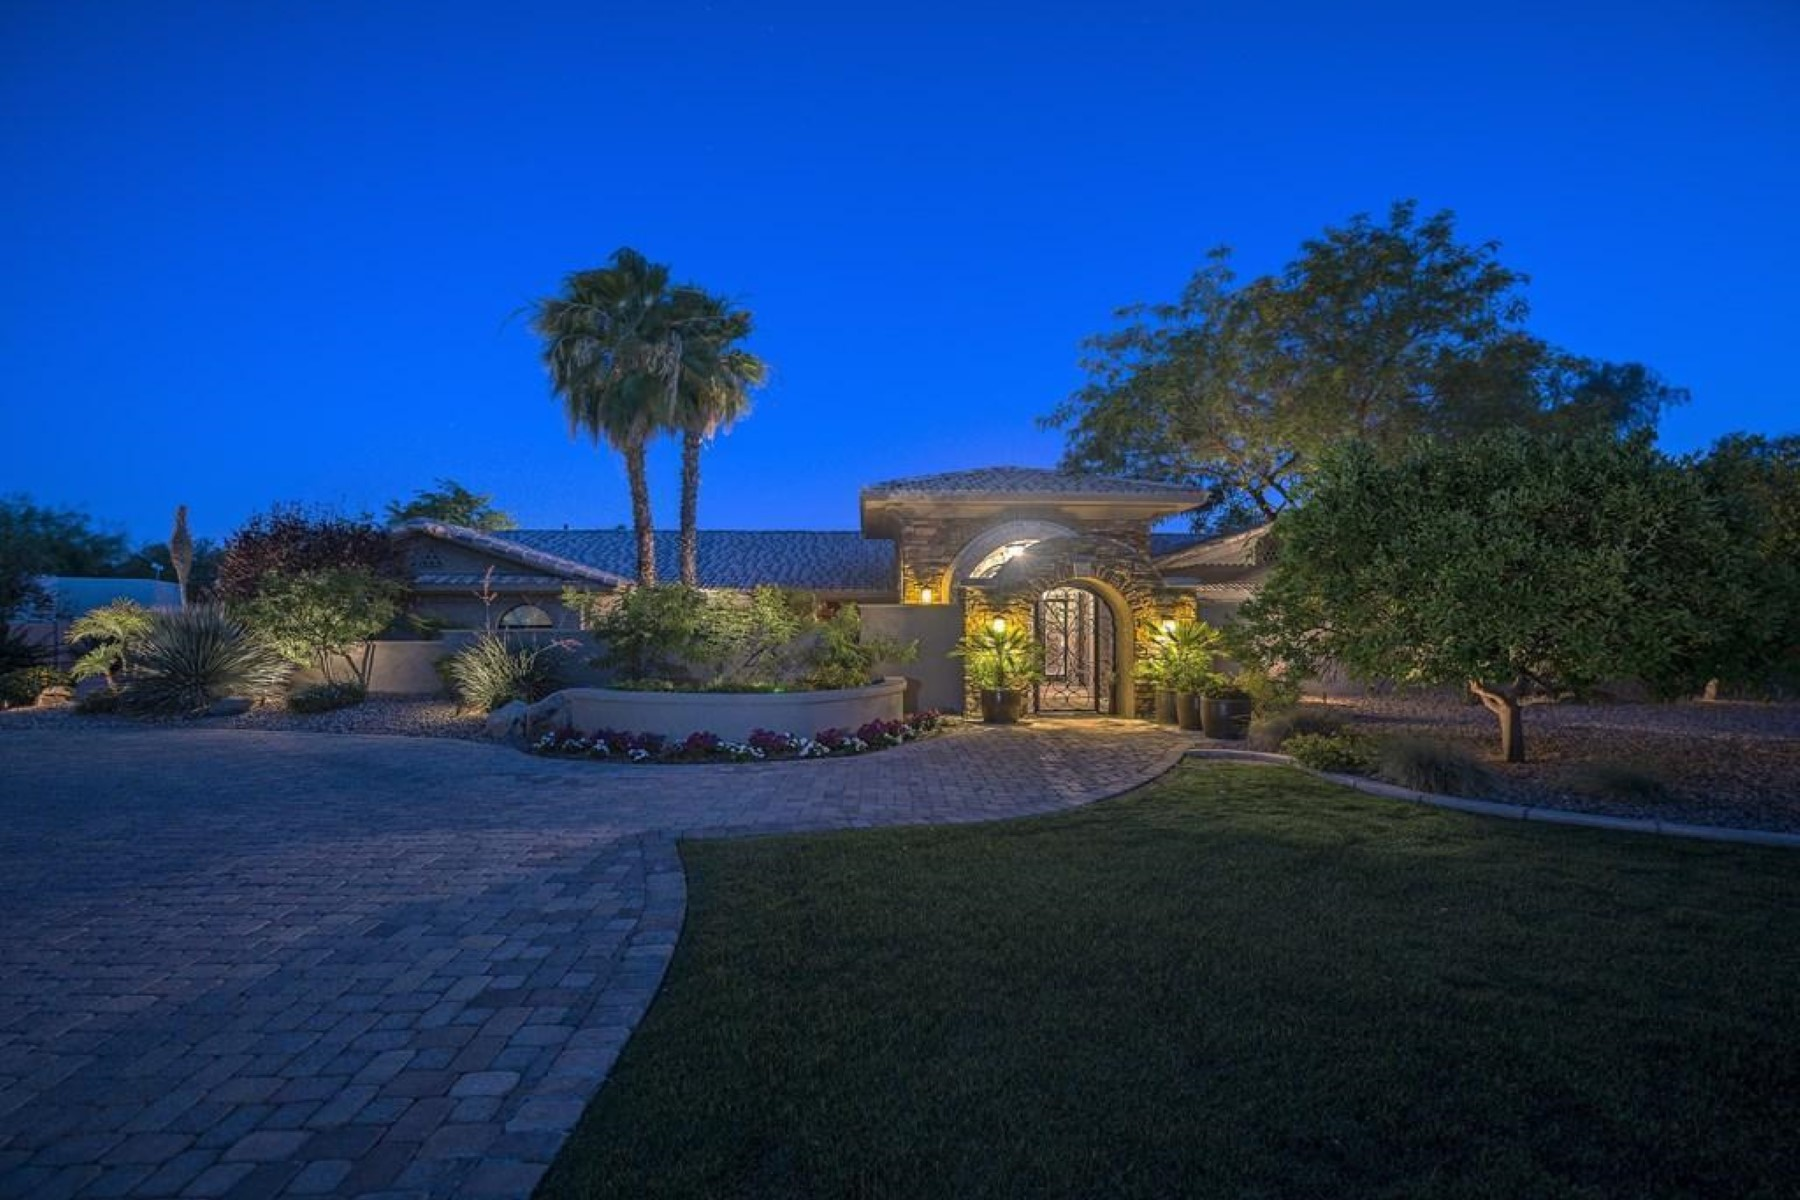 Property For Sale at Centrally located, this private custom home